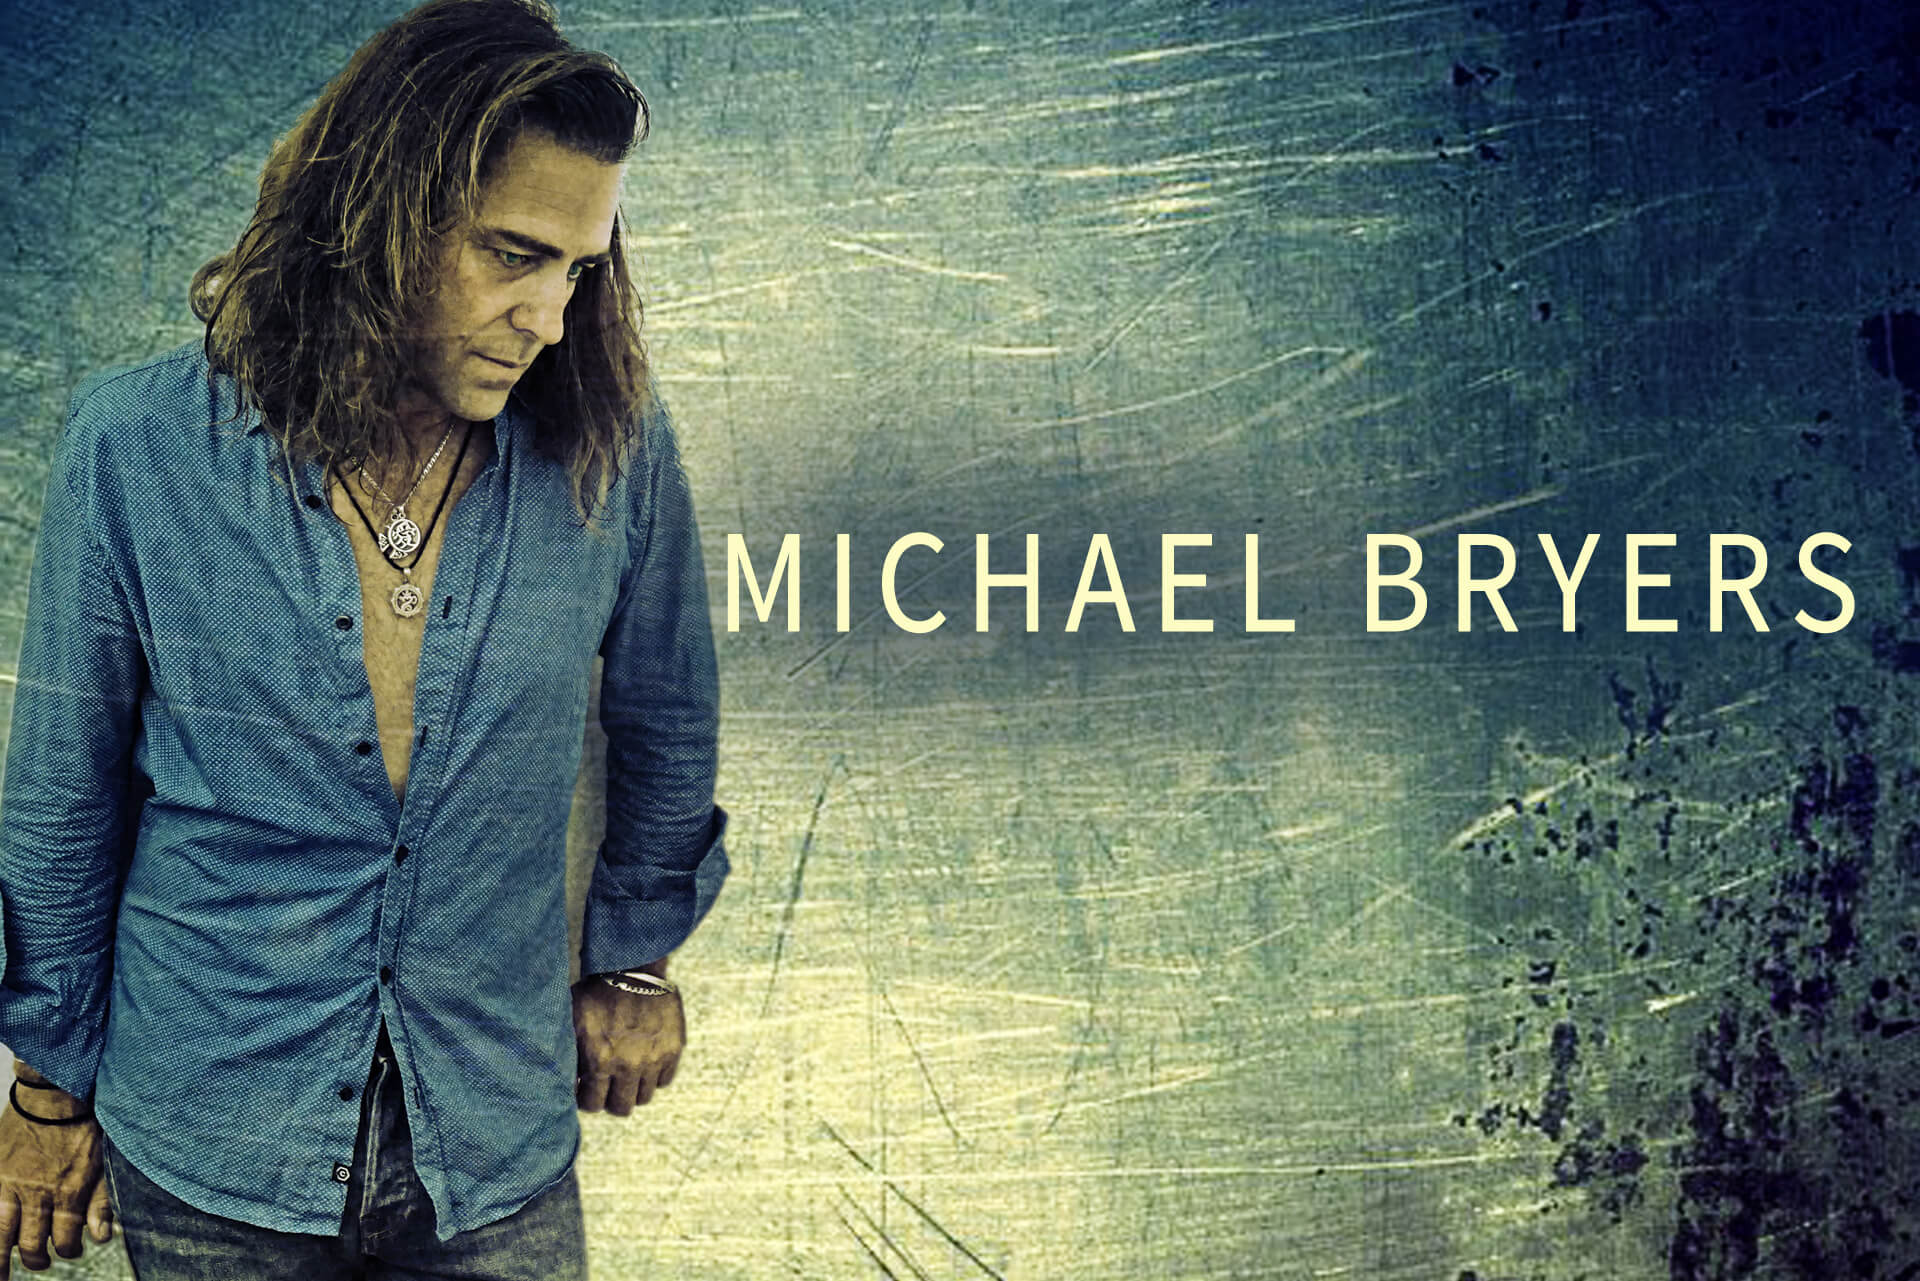 Michael Bryers